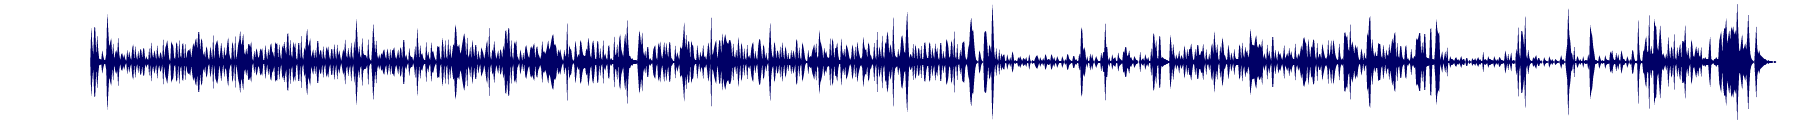 waveform of track #74101